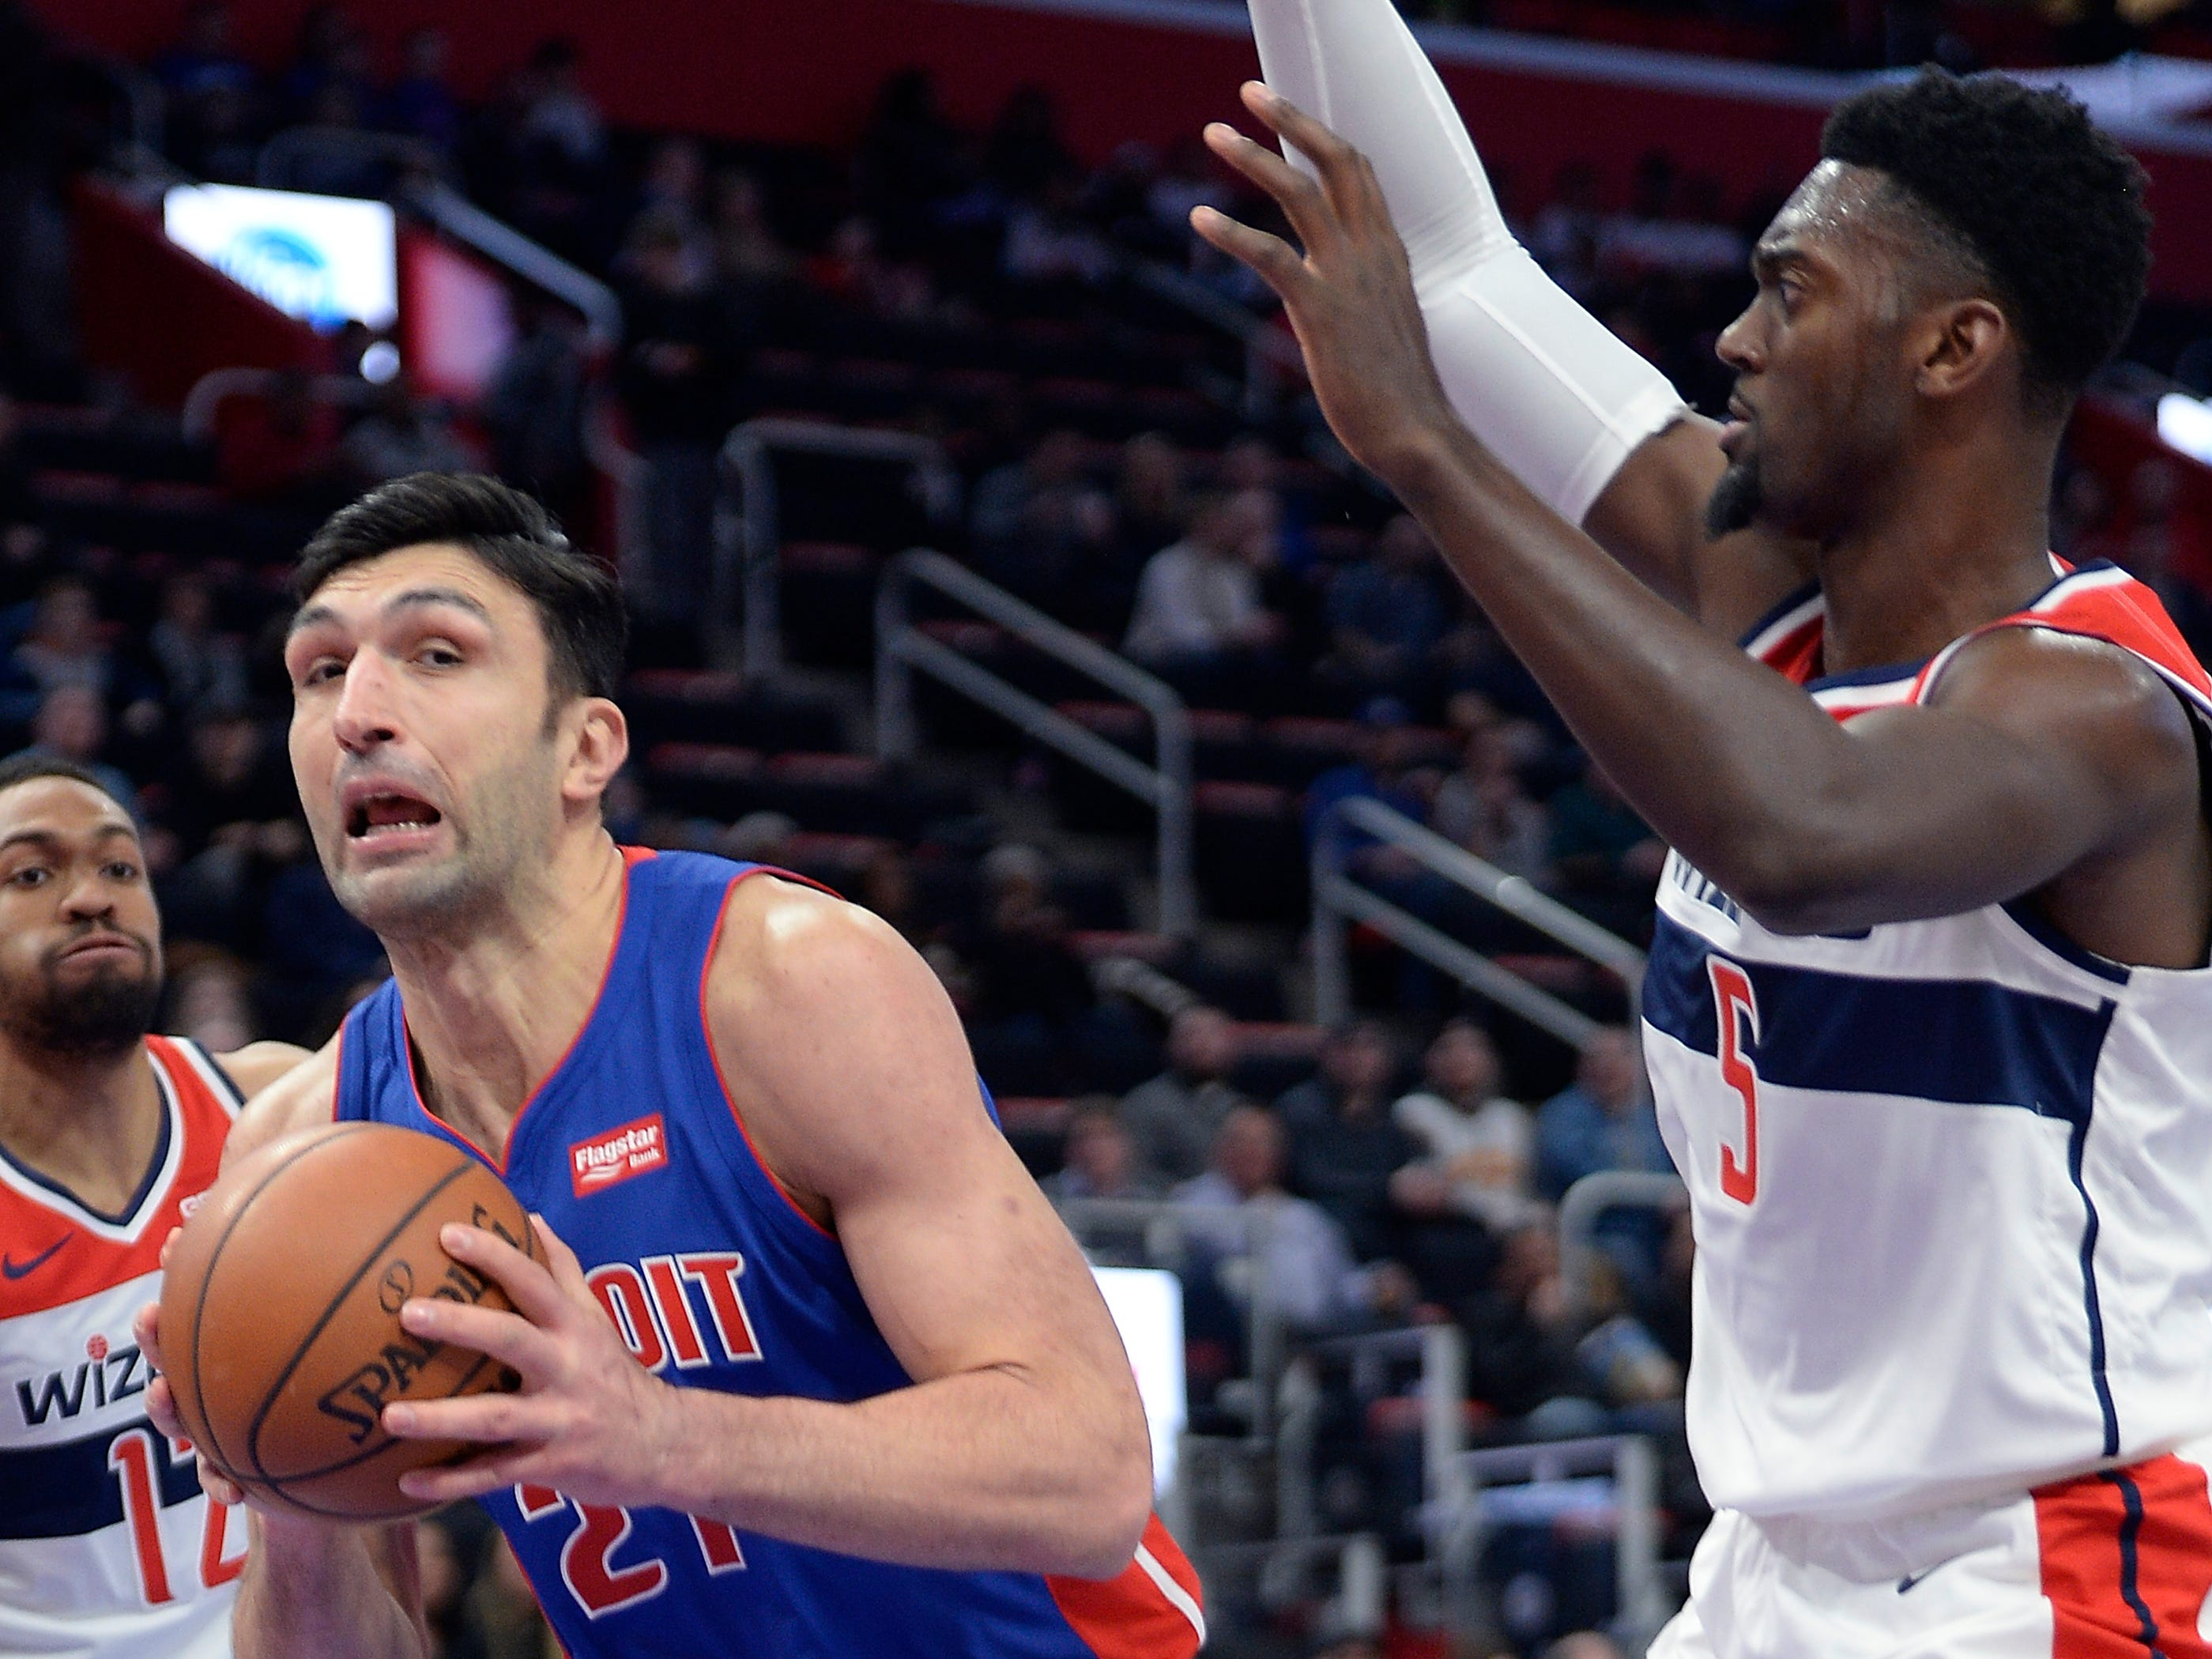 Pistons' ZaZa Pachulia looks for room around Wizards' Bobby Portis in the second quarter.